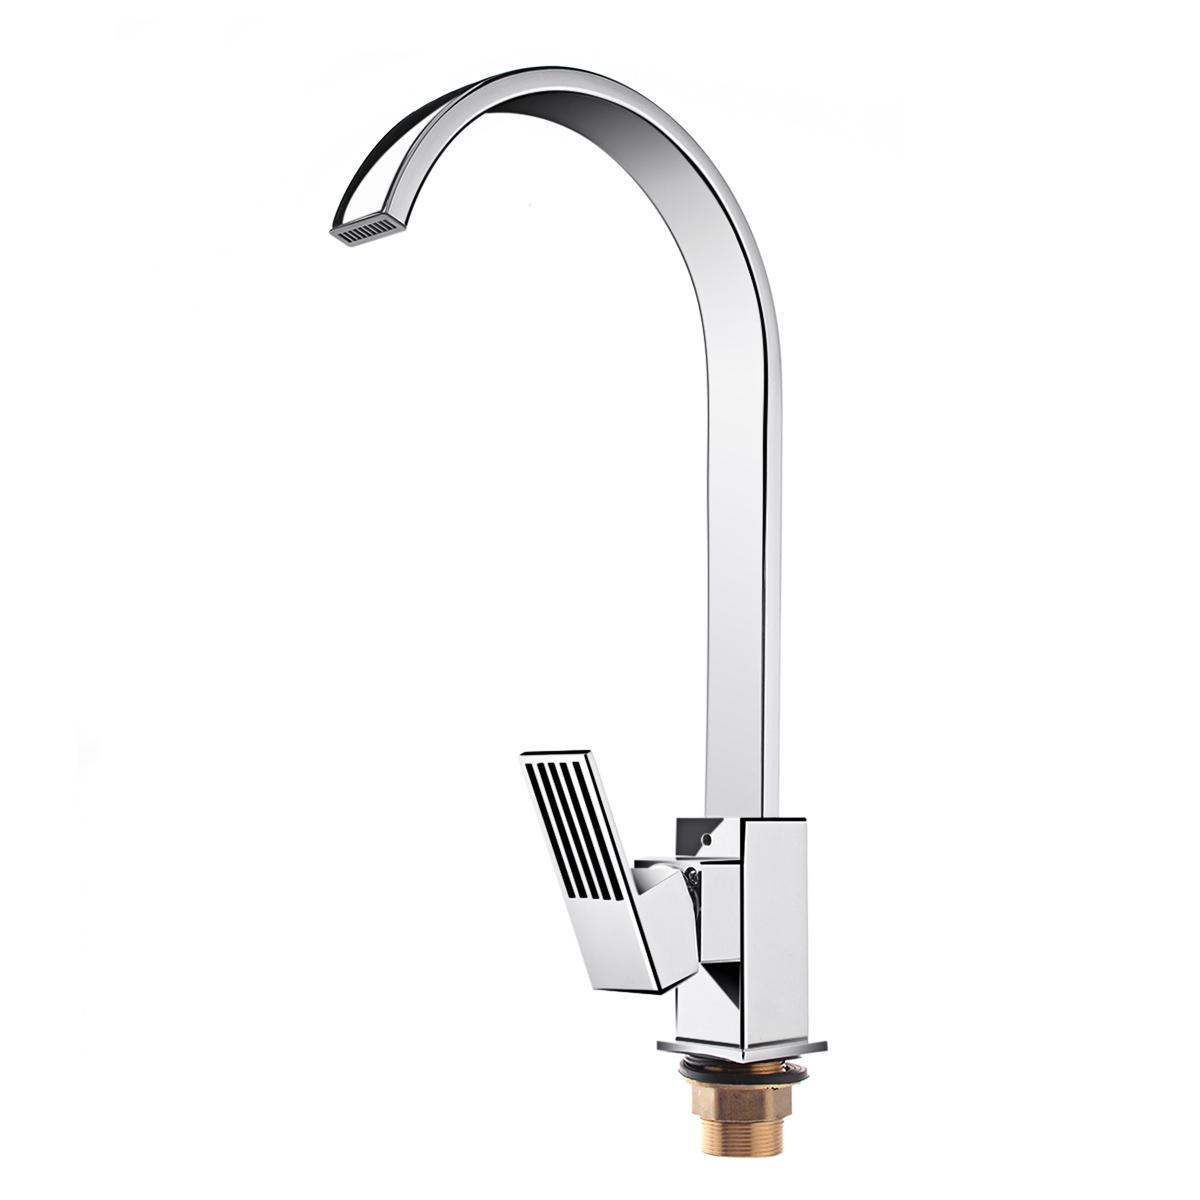 Kitchen Mixer Tap Square Single Lever Sink Faucet Mixer Tap Swivei Spout Brass Kitchen Bathroom